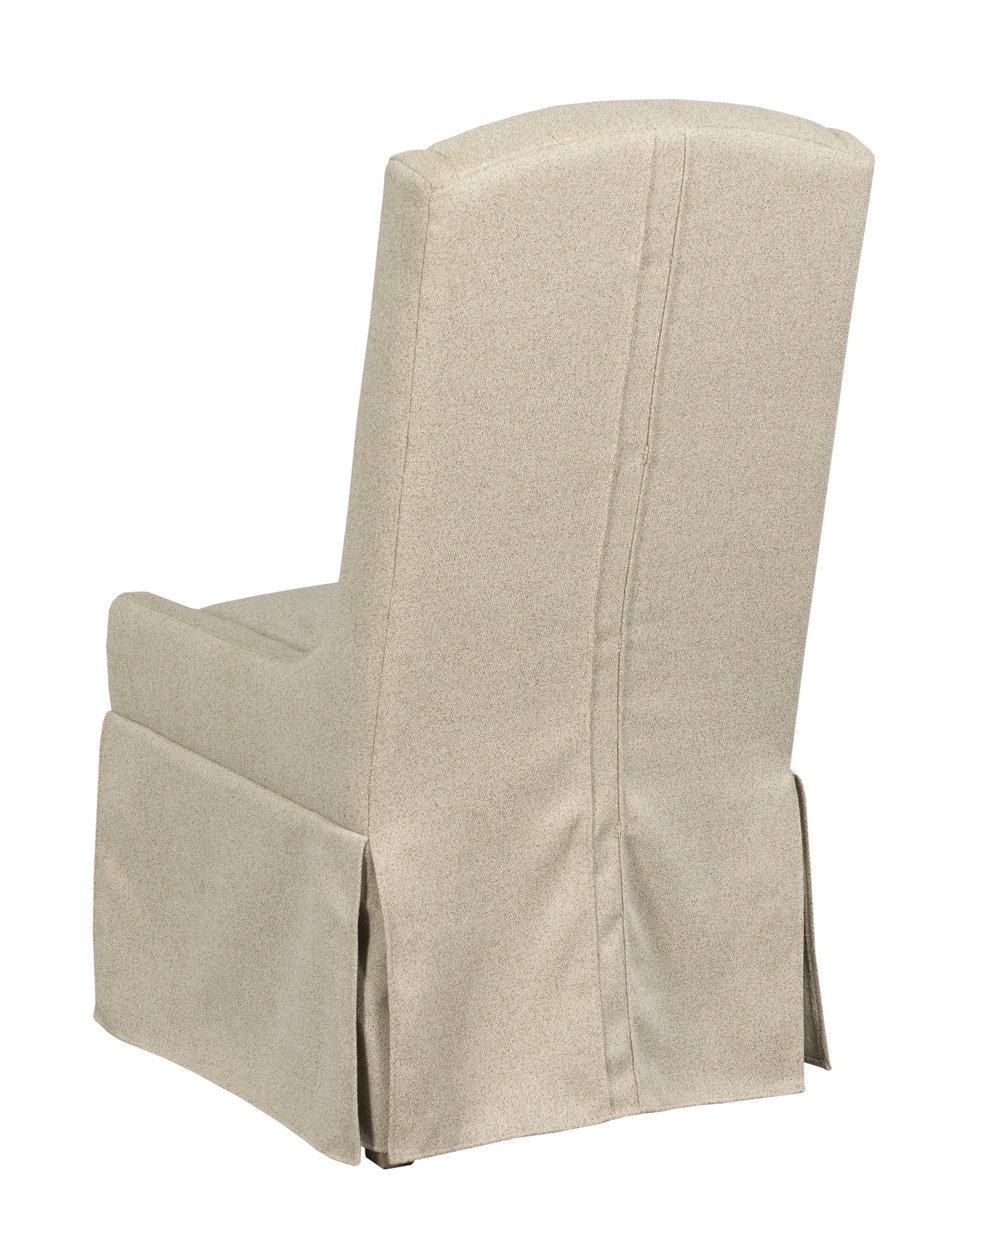 Kincaid Furniture - Barrier Slipcovered Dining Chair